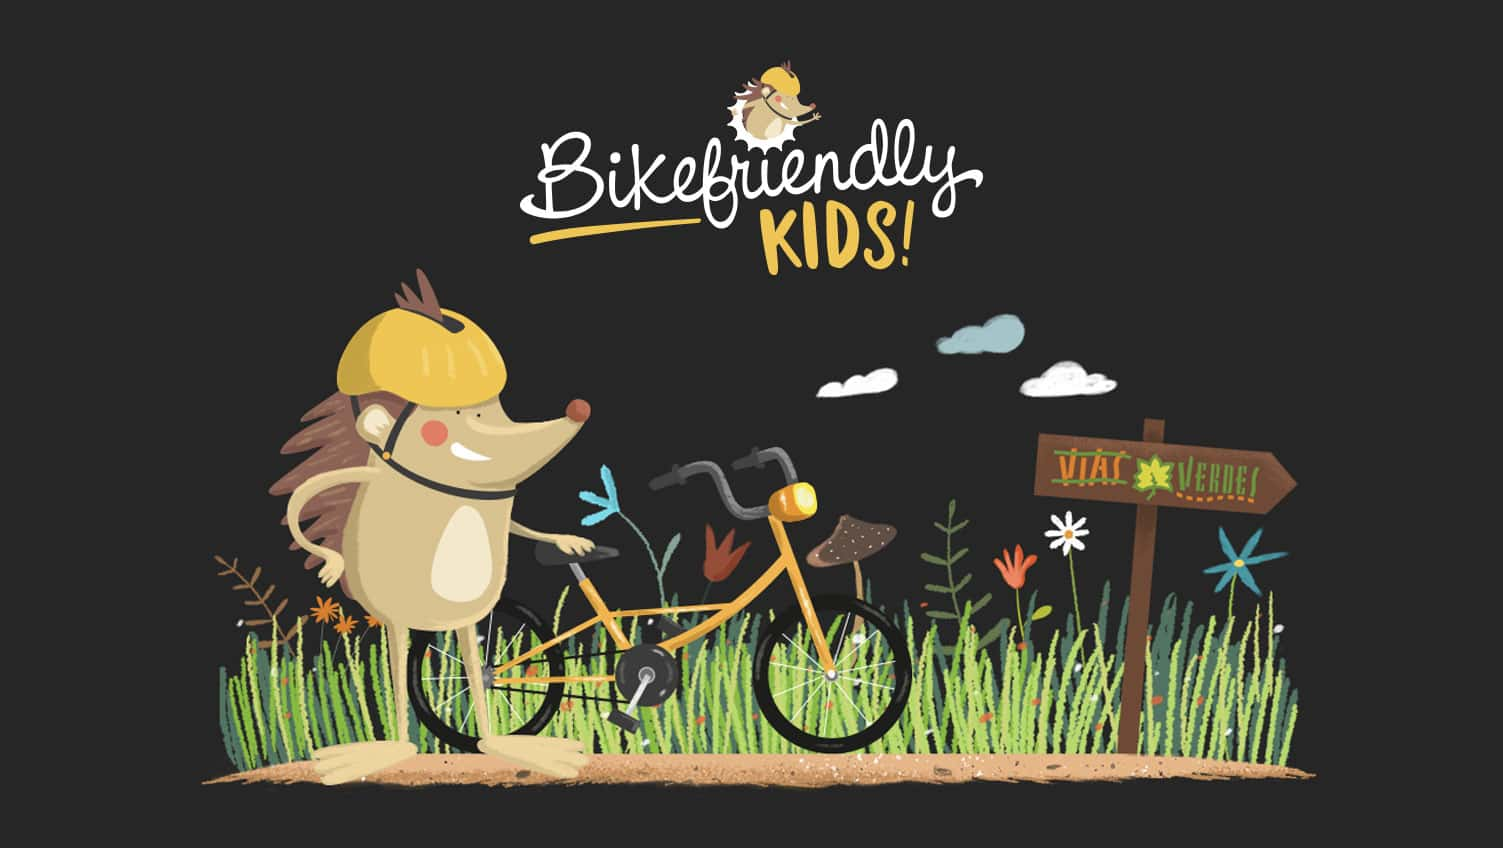 BIKEFRIENDLY KIDS